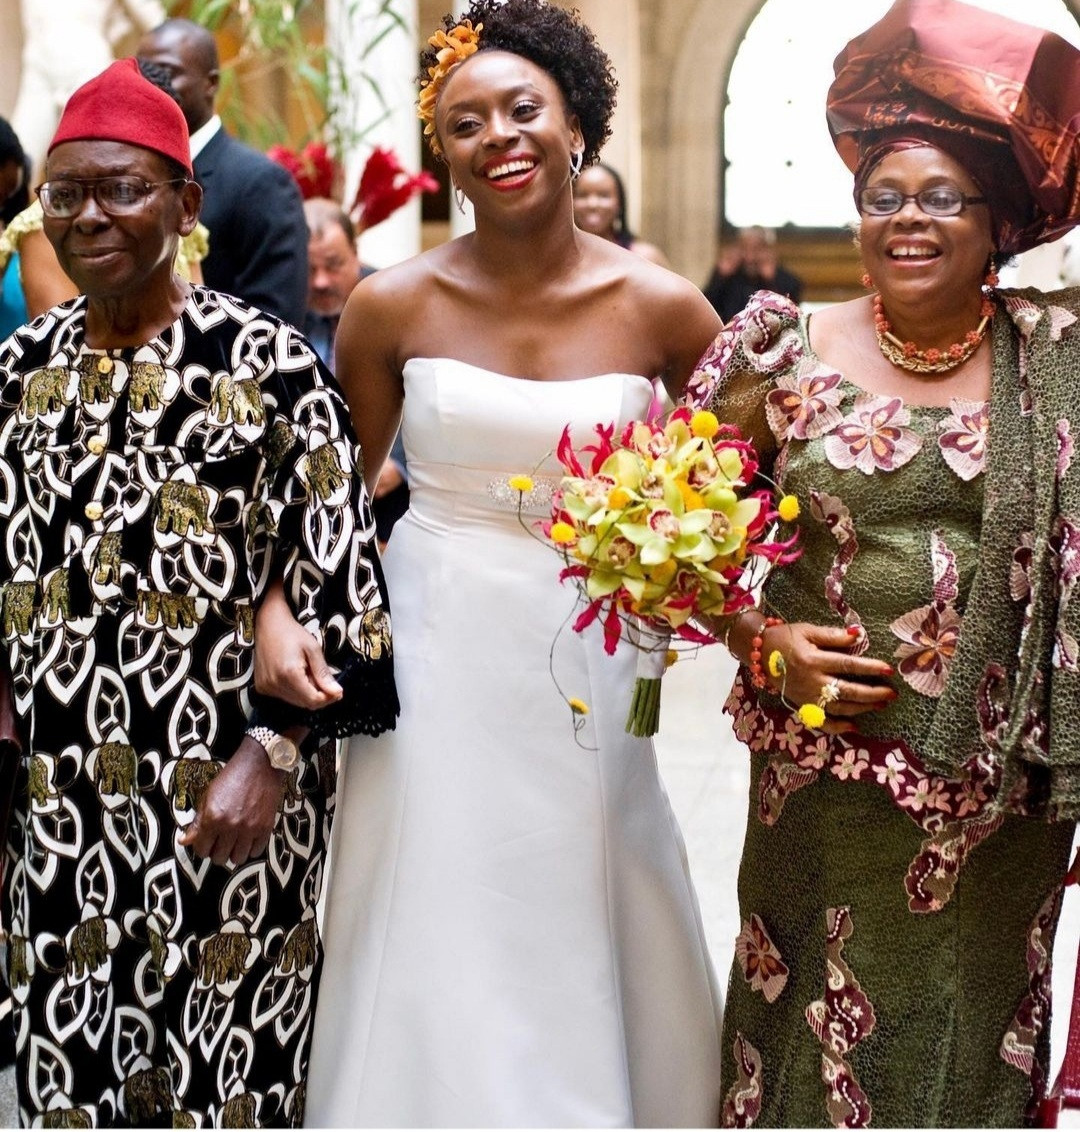 Chimamanda Adichie shares photos from her wedding as she reveals how she broke with convention to inspire young womenmen